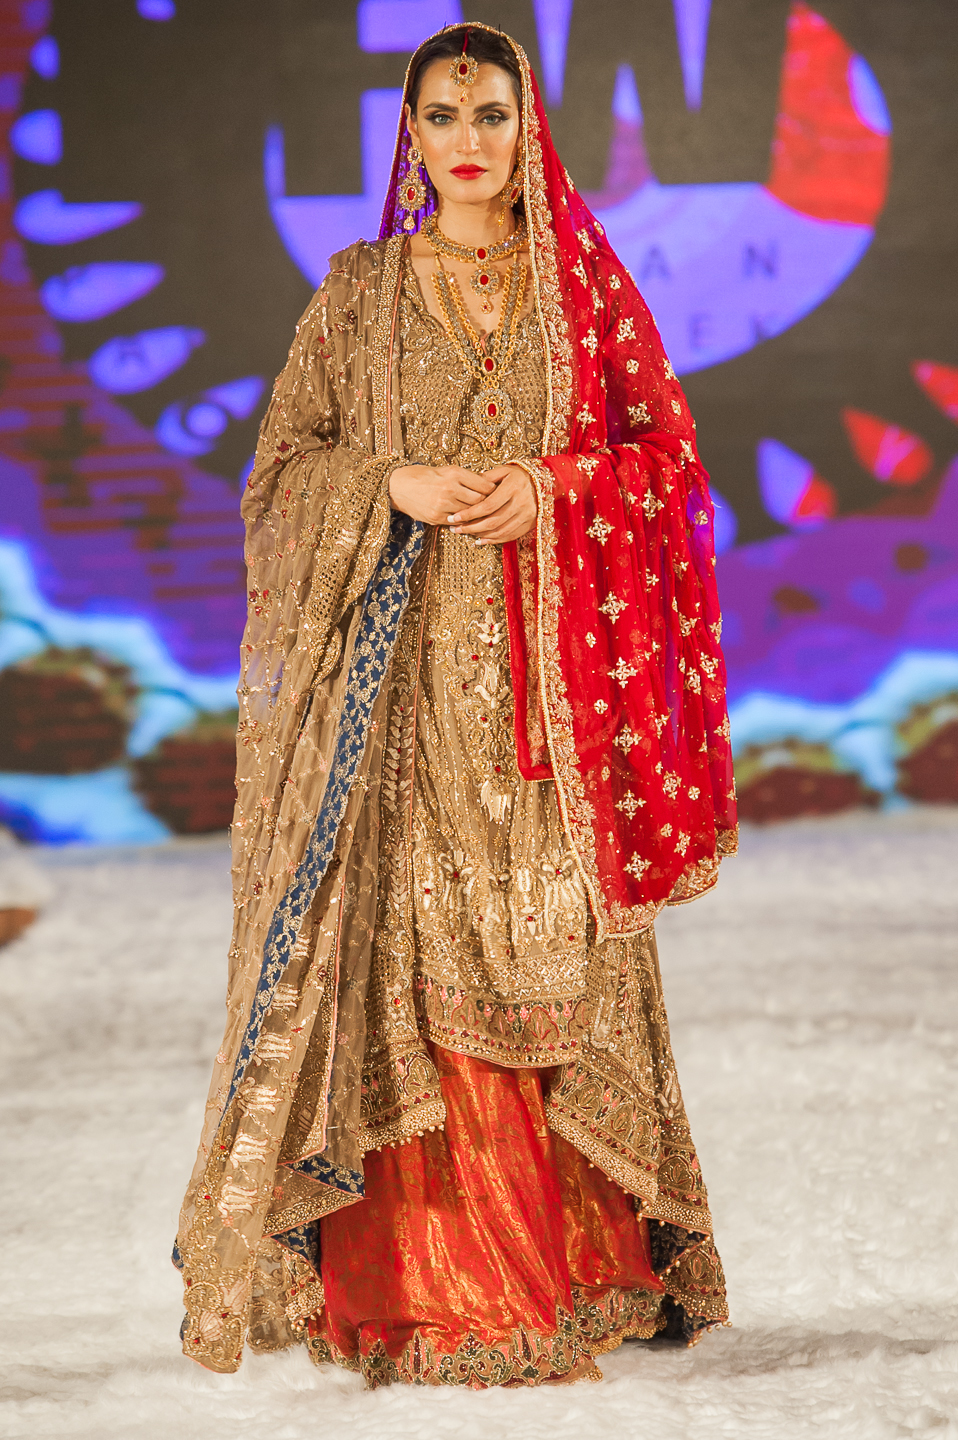 Goal by Fozia Hammad - Pakistan Fashion Week London - Photography by Shahid Malik